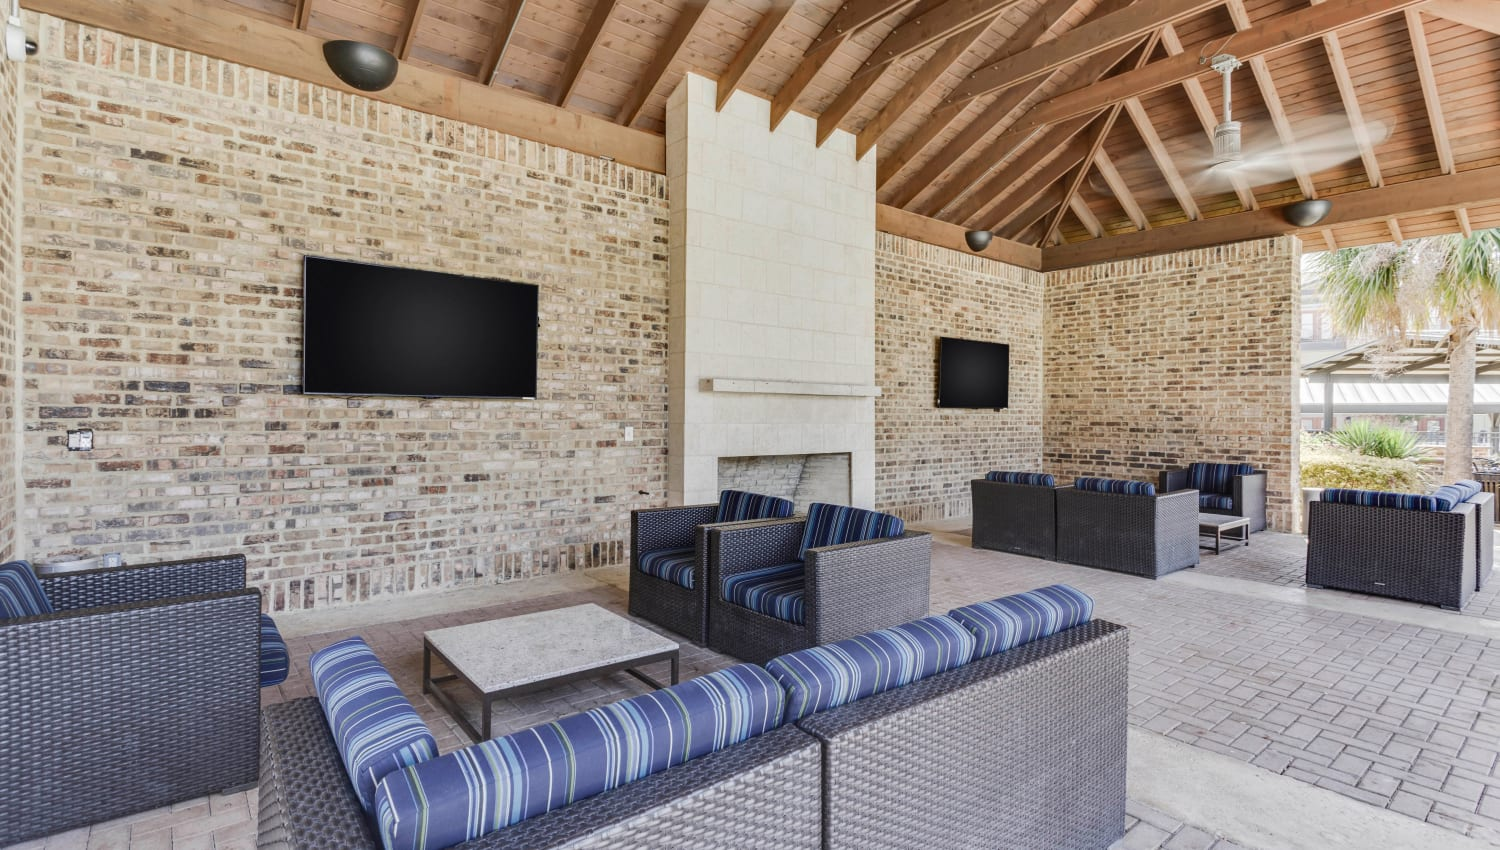 Flatscreen TV at an outdoor covered lounge area at Tacara at Westover Hills in San Antonio, Texas